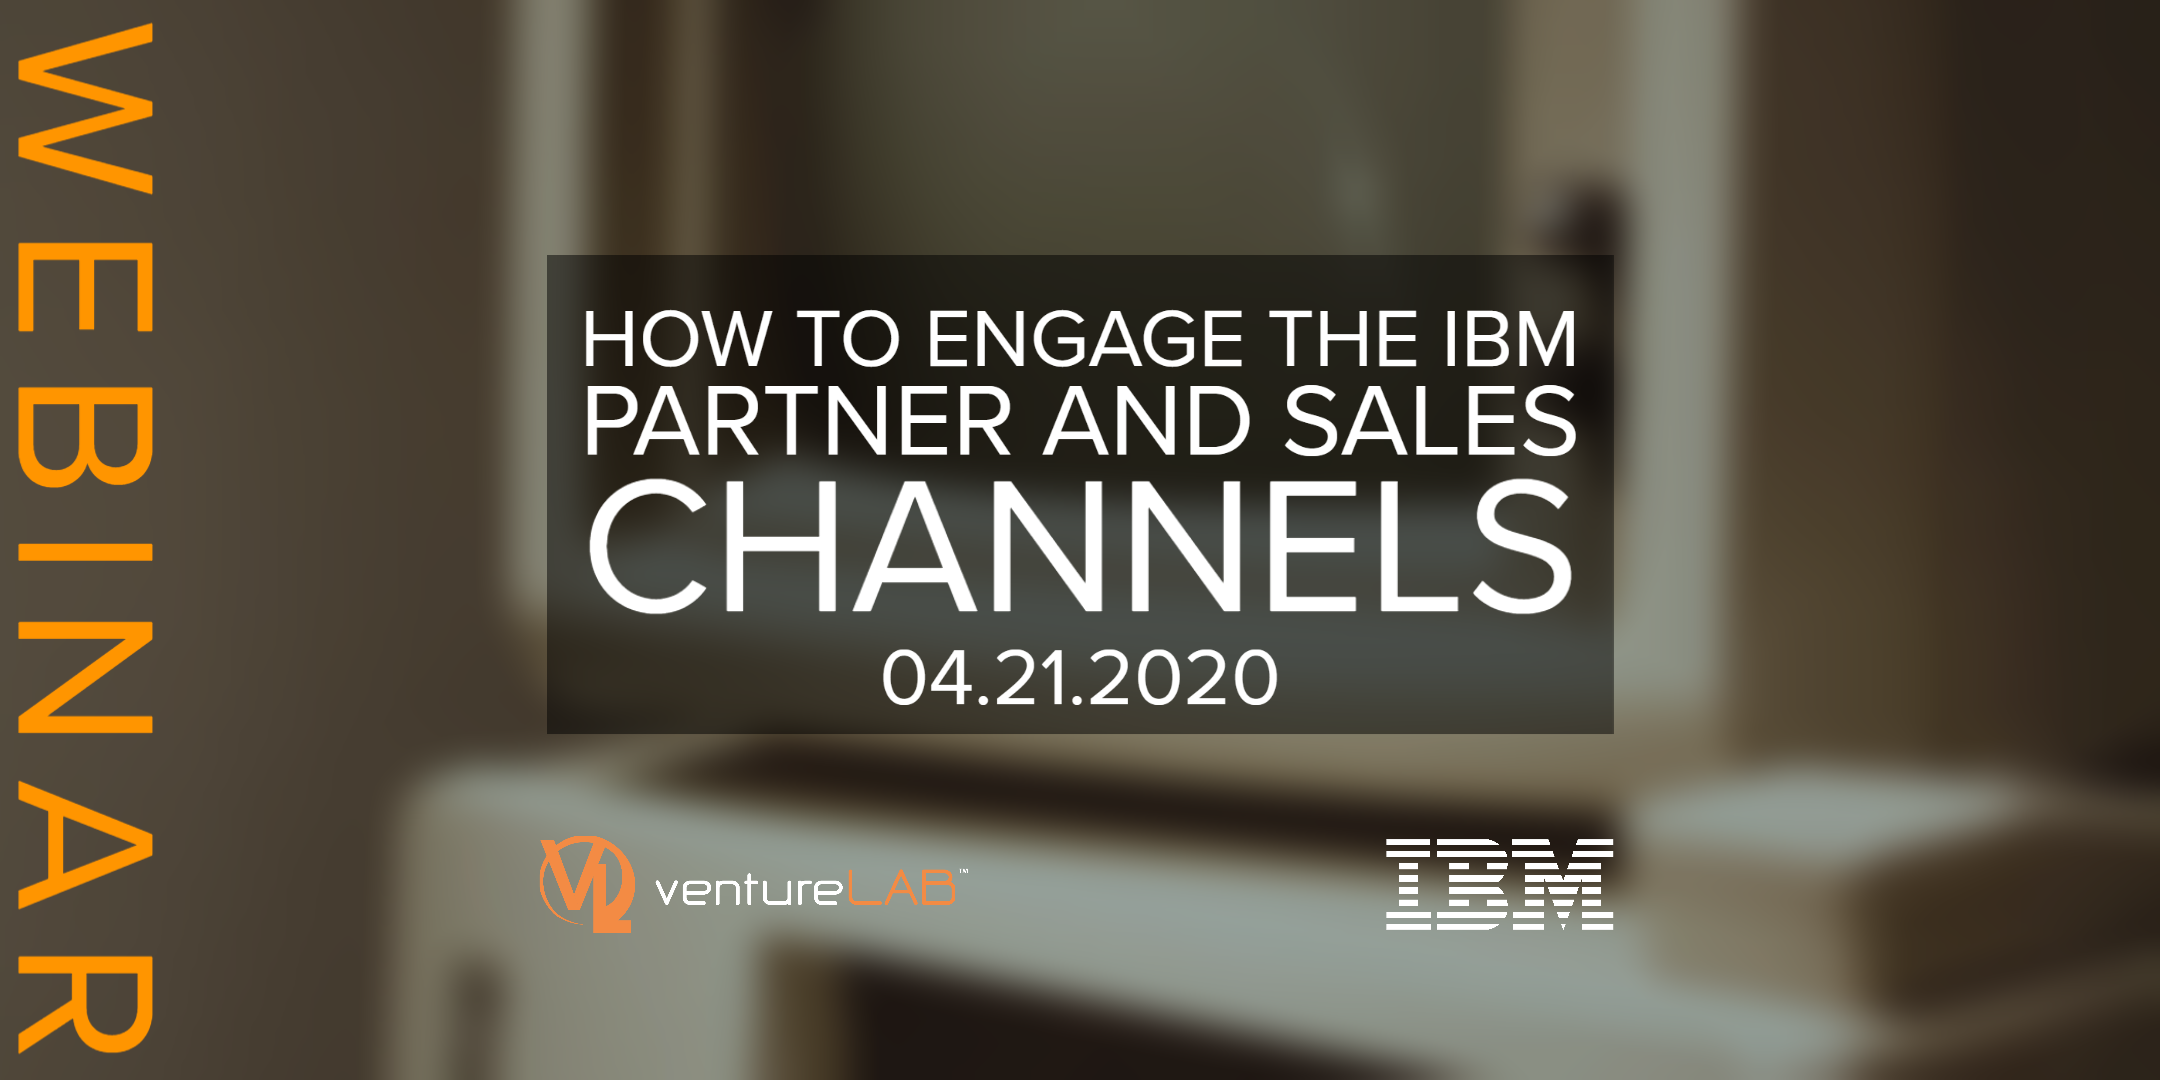 How to Engage the IBM Partner and Sales Channels Webinar